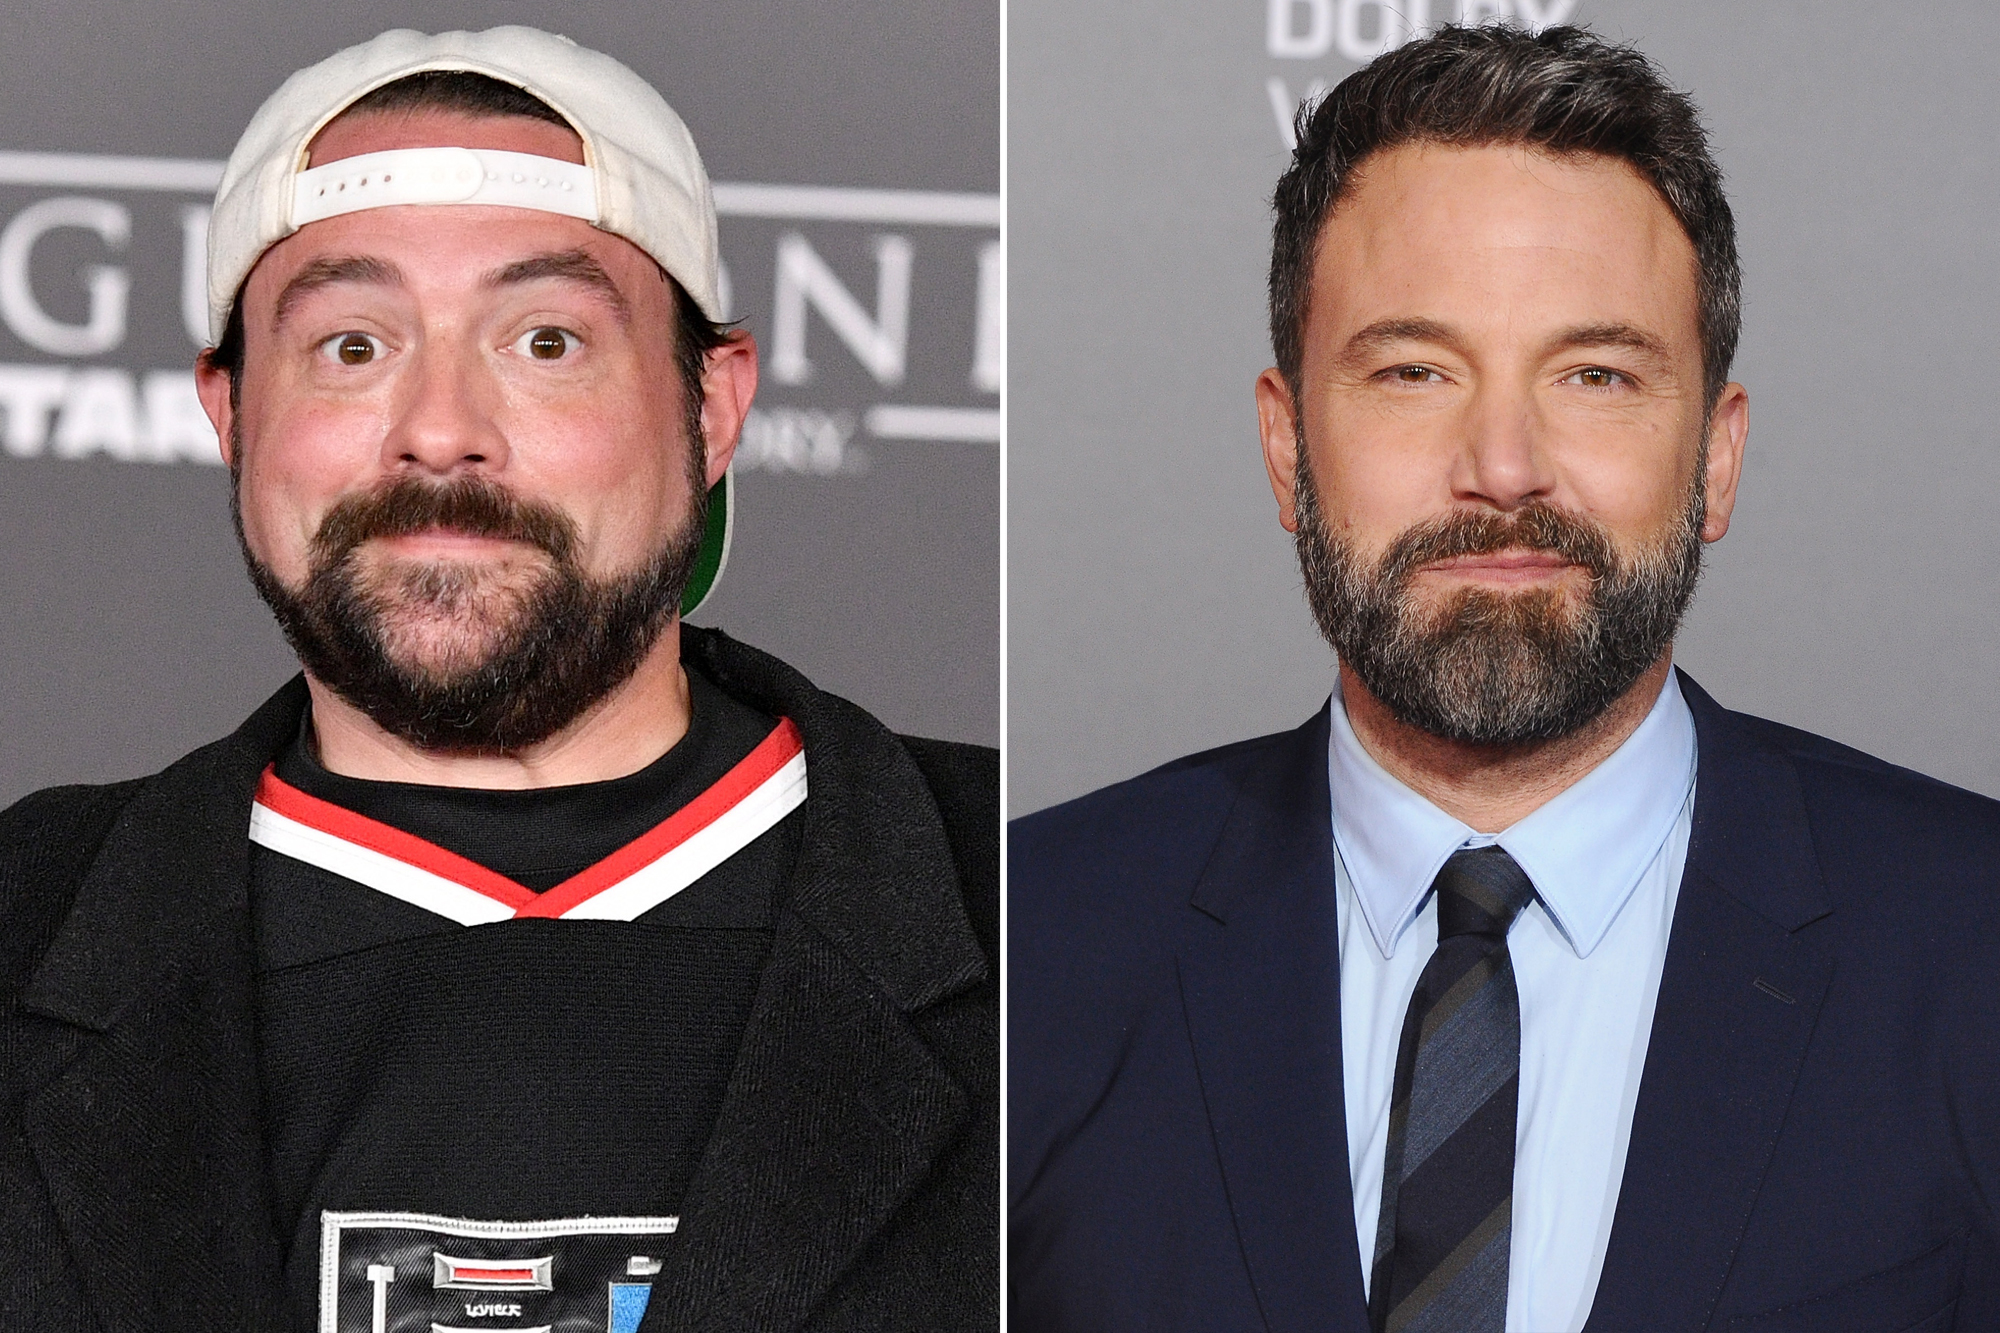 Kevin Smith and Ben Affleck